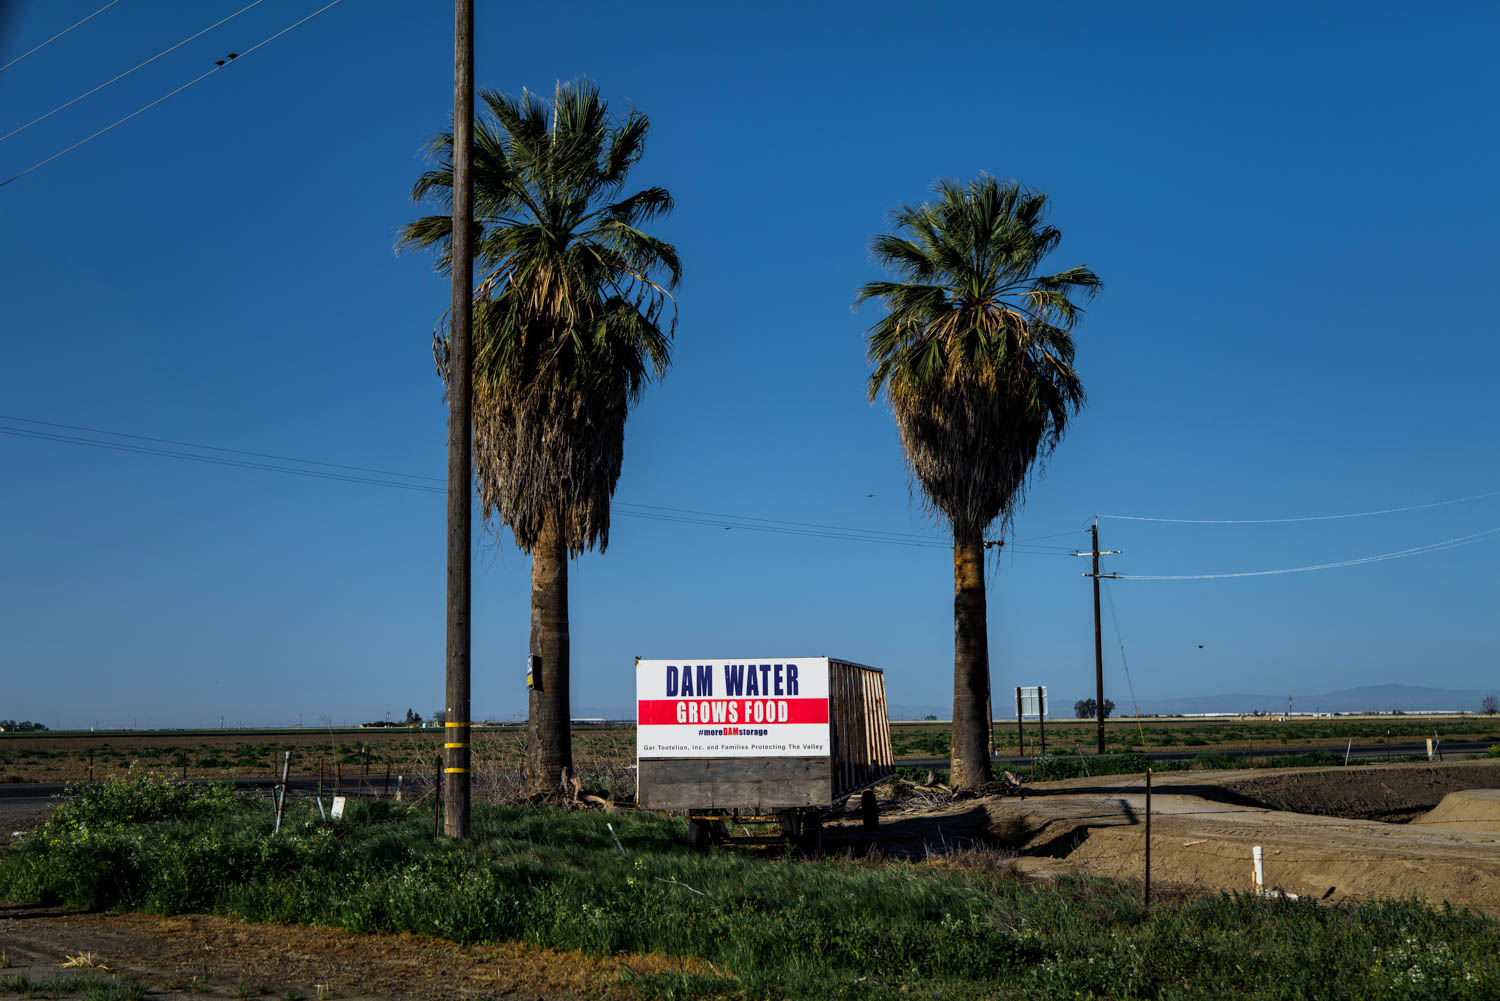 Political signs on State Route 43 just outside the city limits of Corcoran, CA support the construction of more dams.